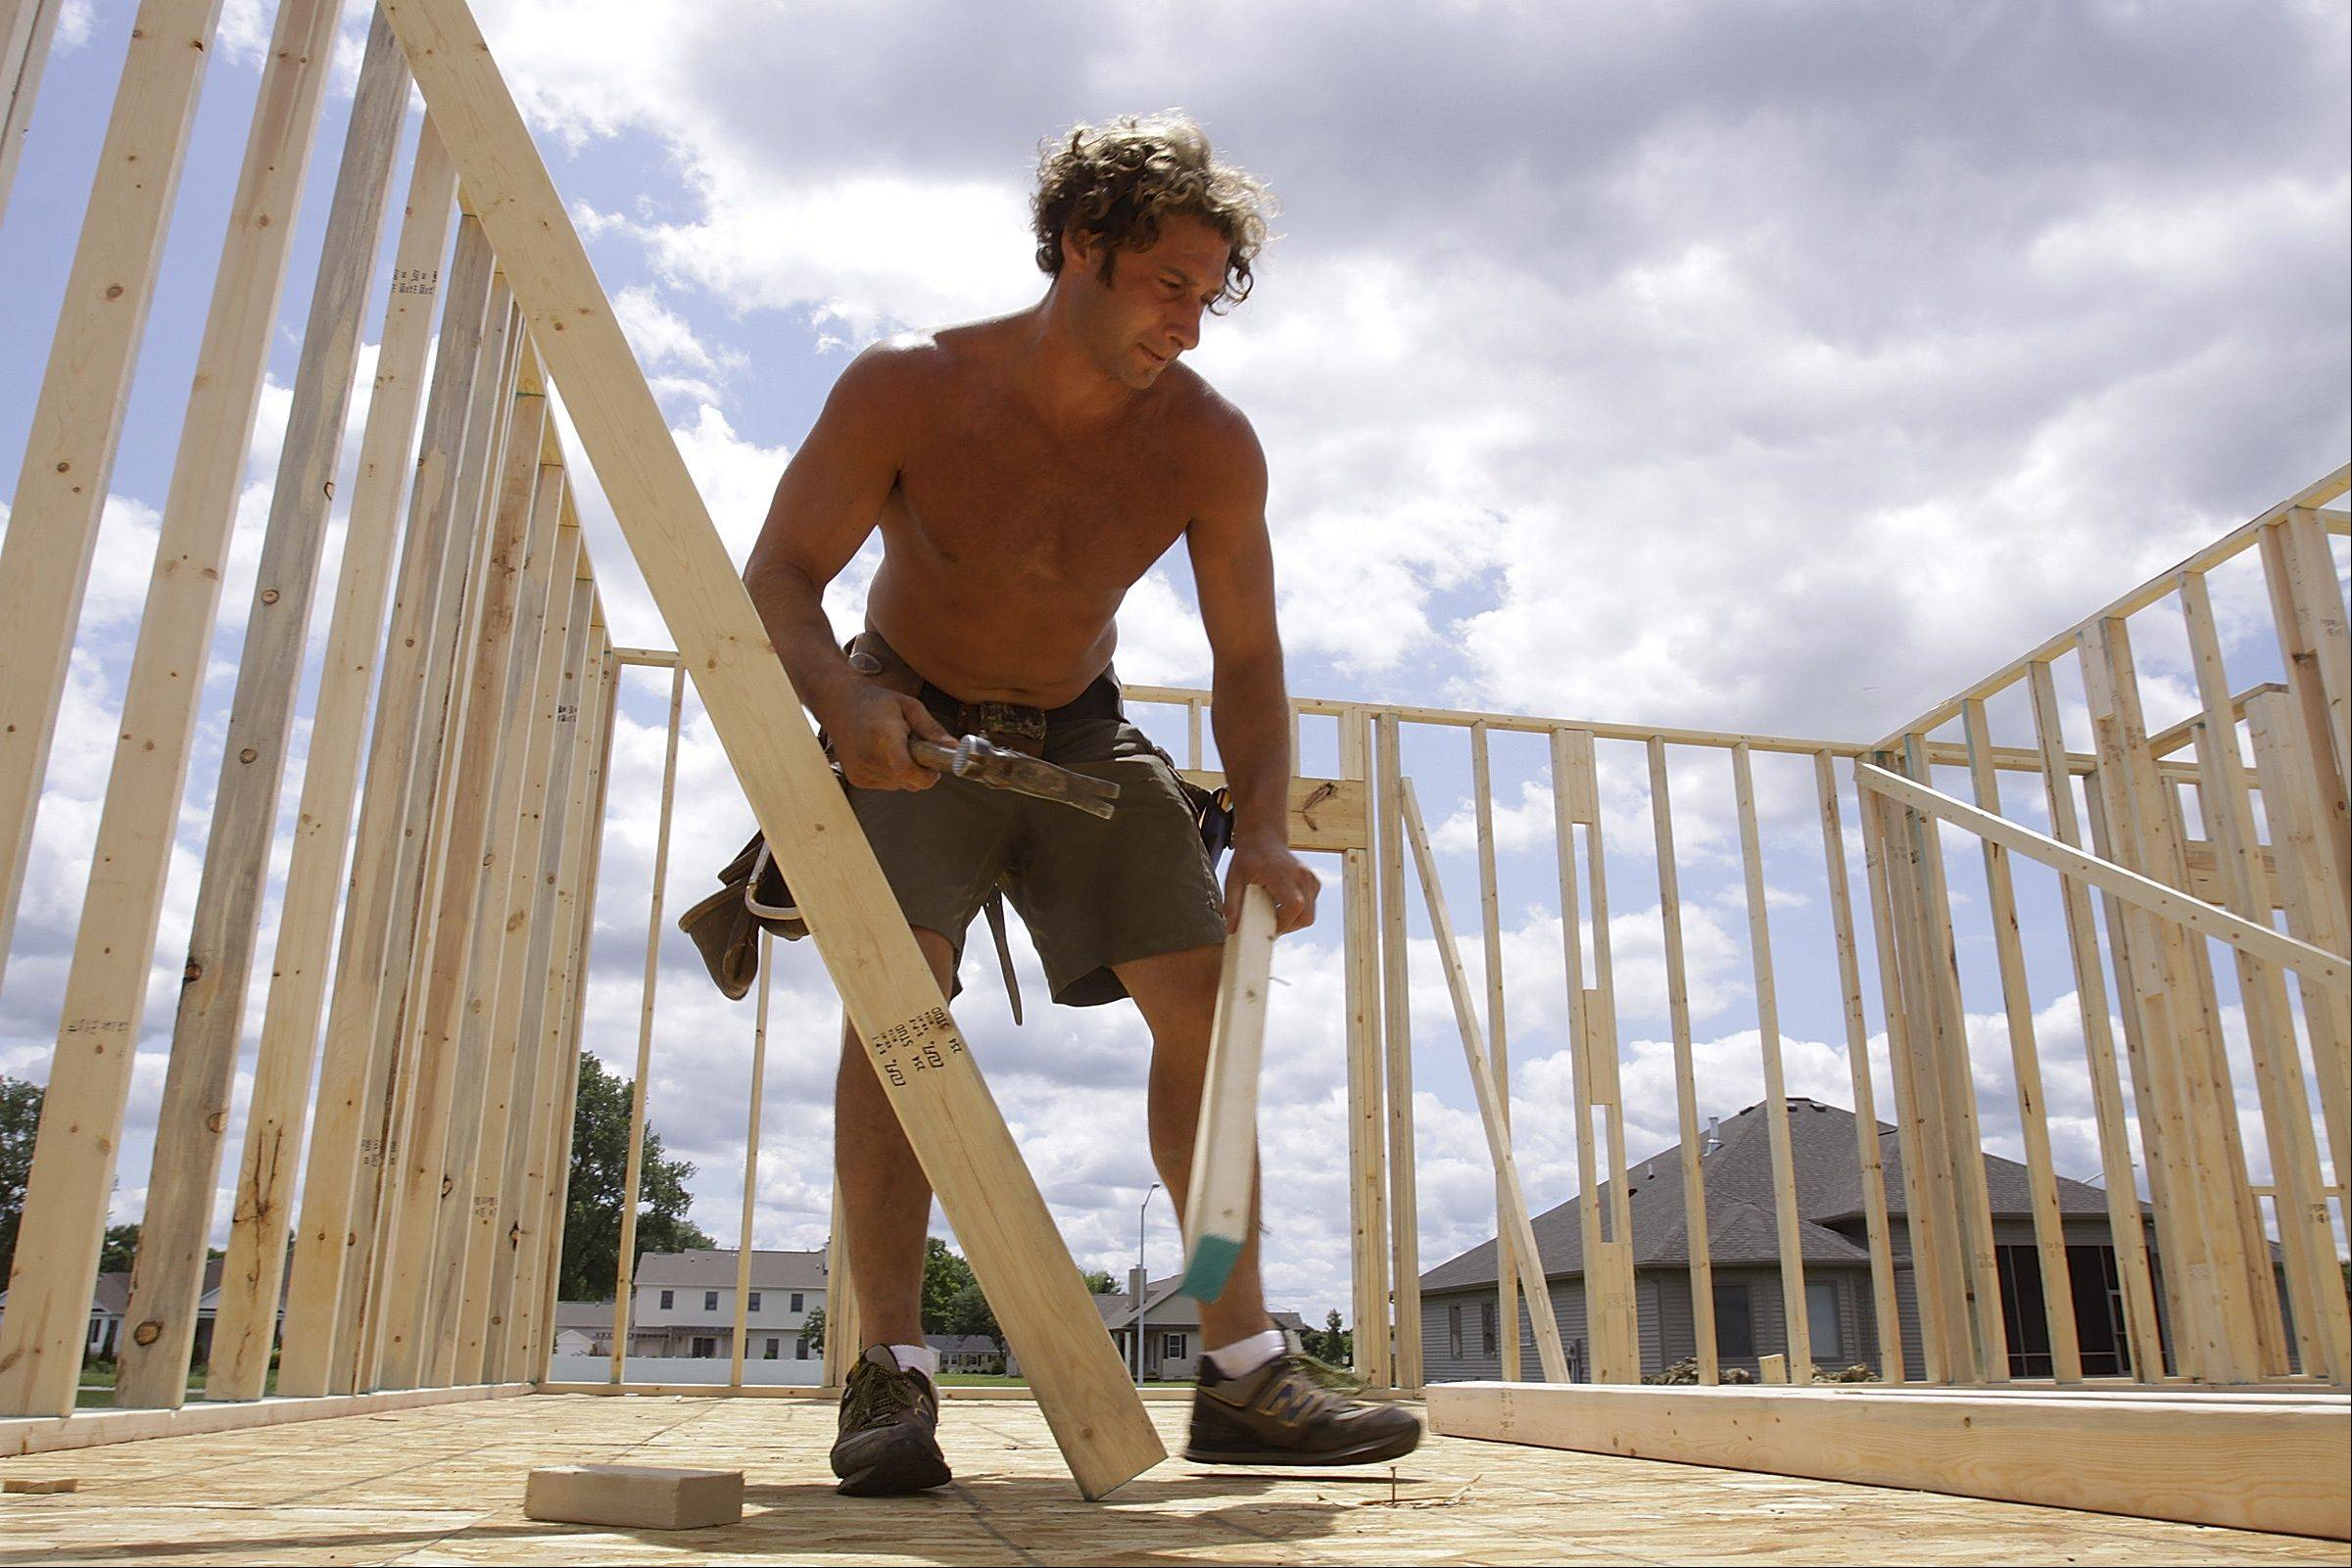 U.S. builders started more homes in February and permits for future construction rose at the fastest pace in 4 � years. The increases point to a housing recovery that is gaining strength.